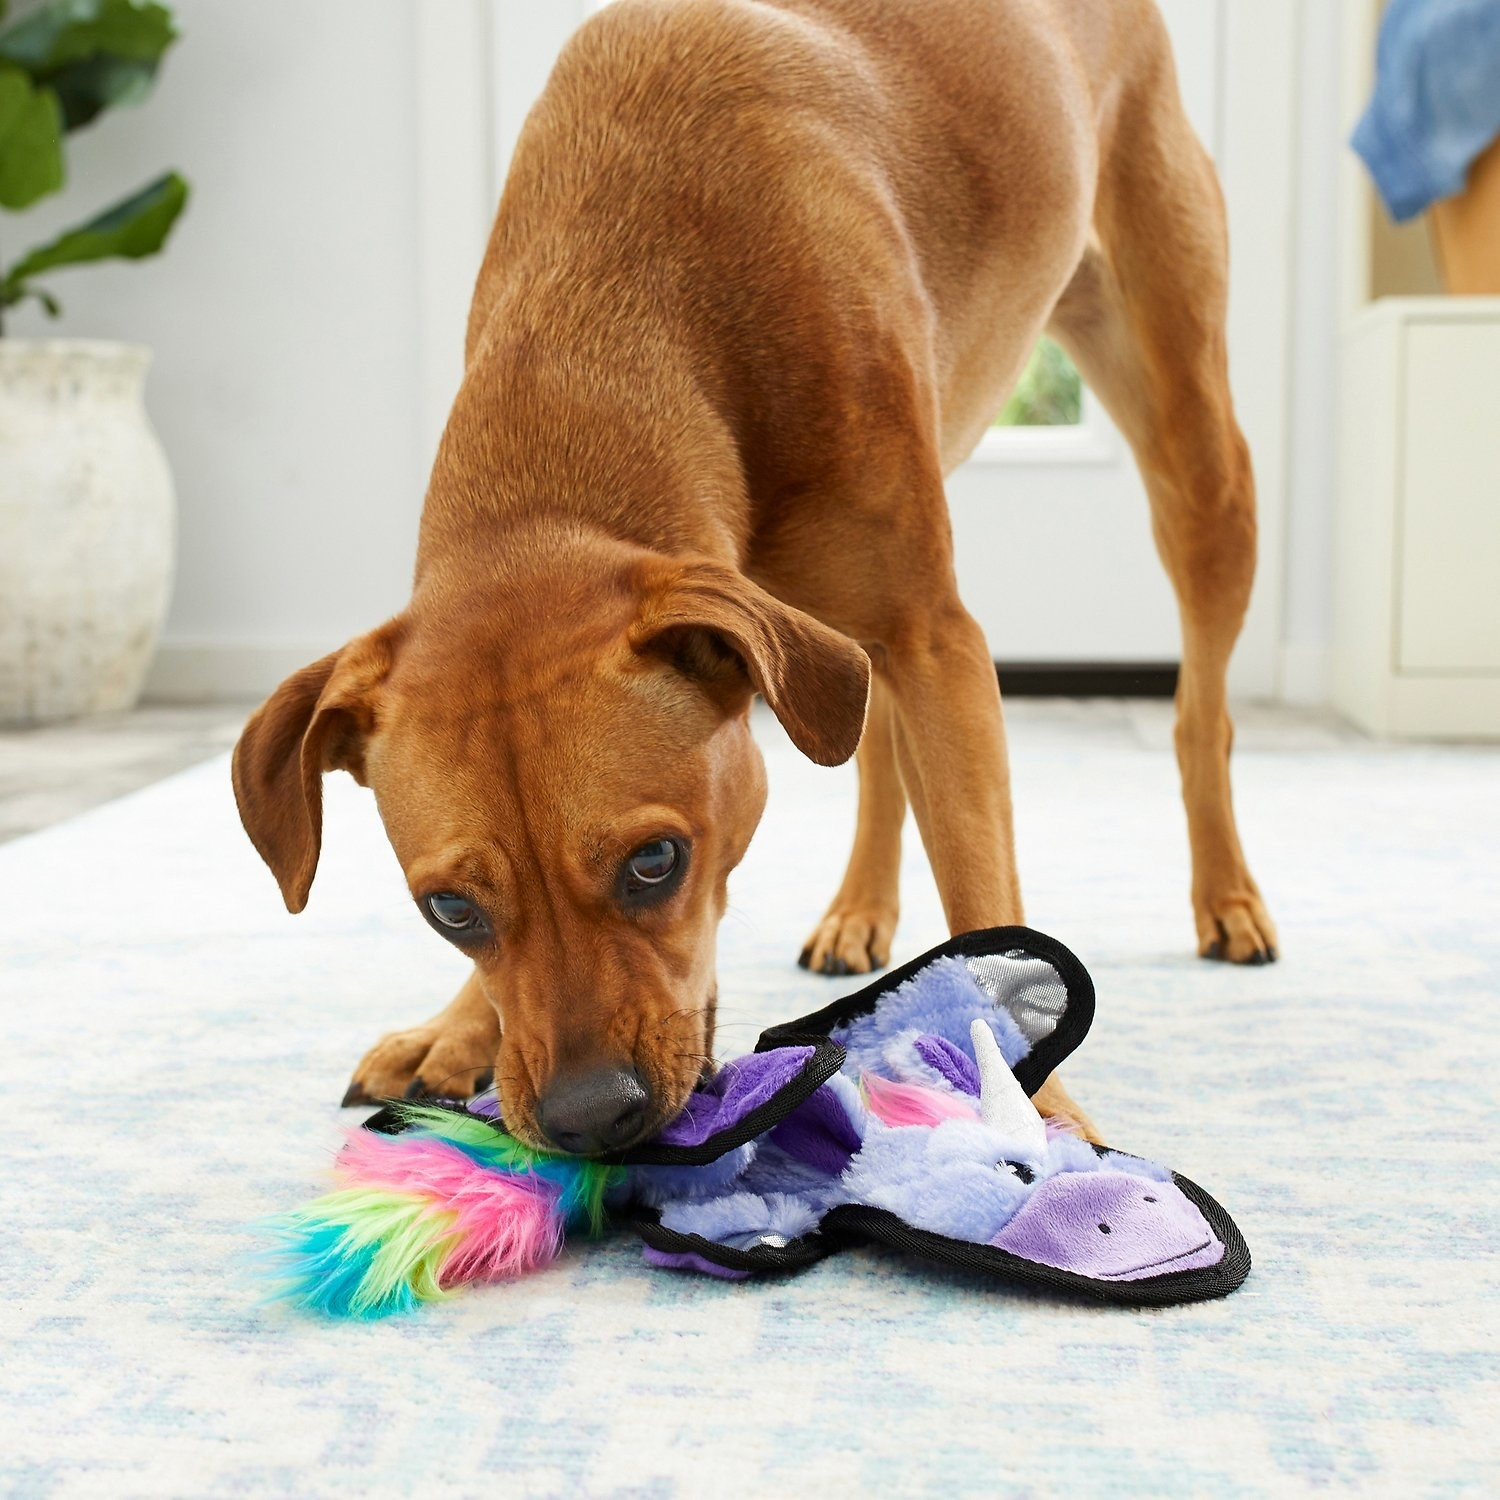 A dog chewing on the unicorn chew toy